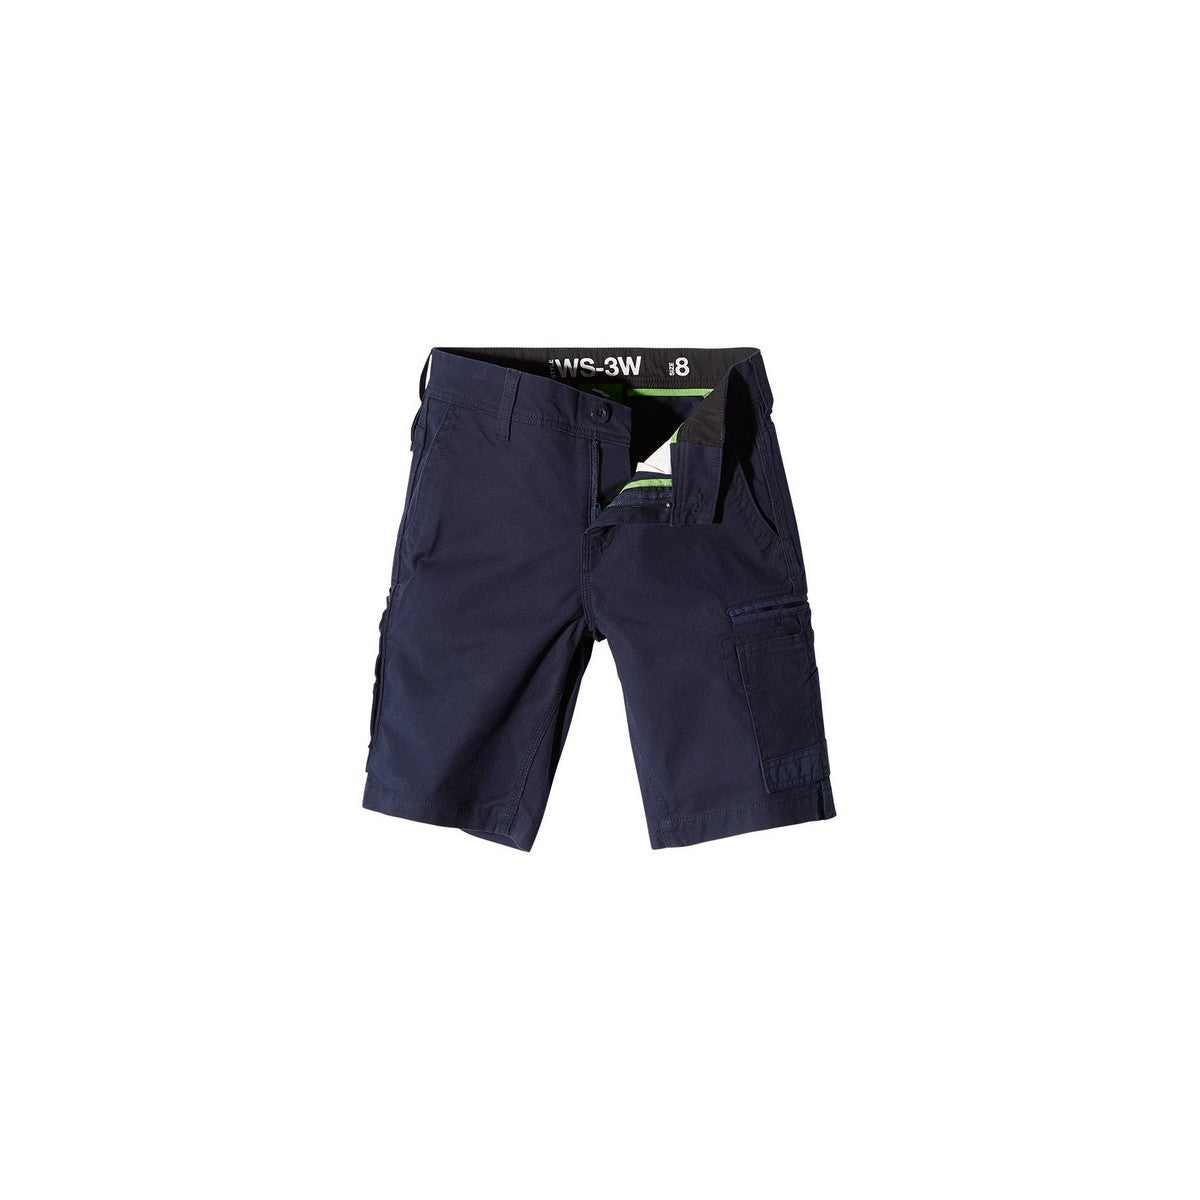 Image of FXD WS-3W Womens Shorts